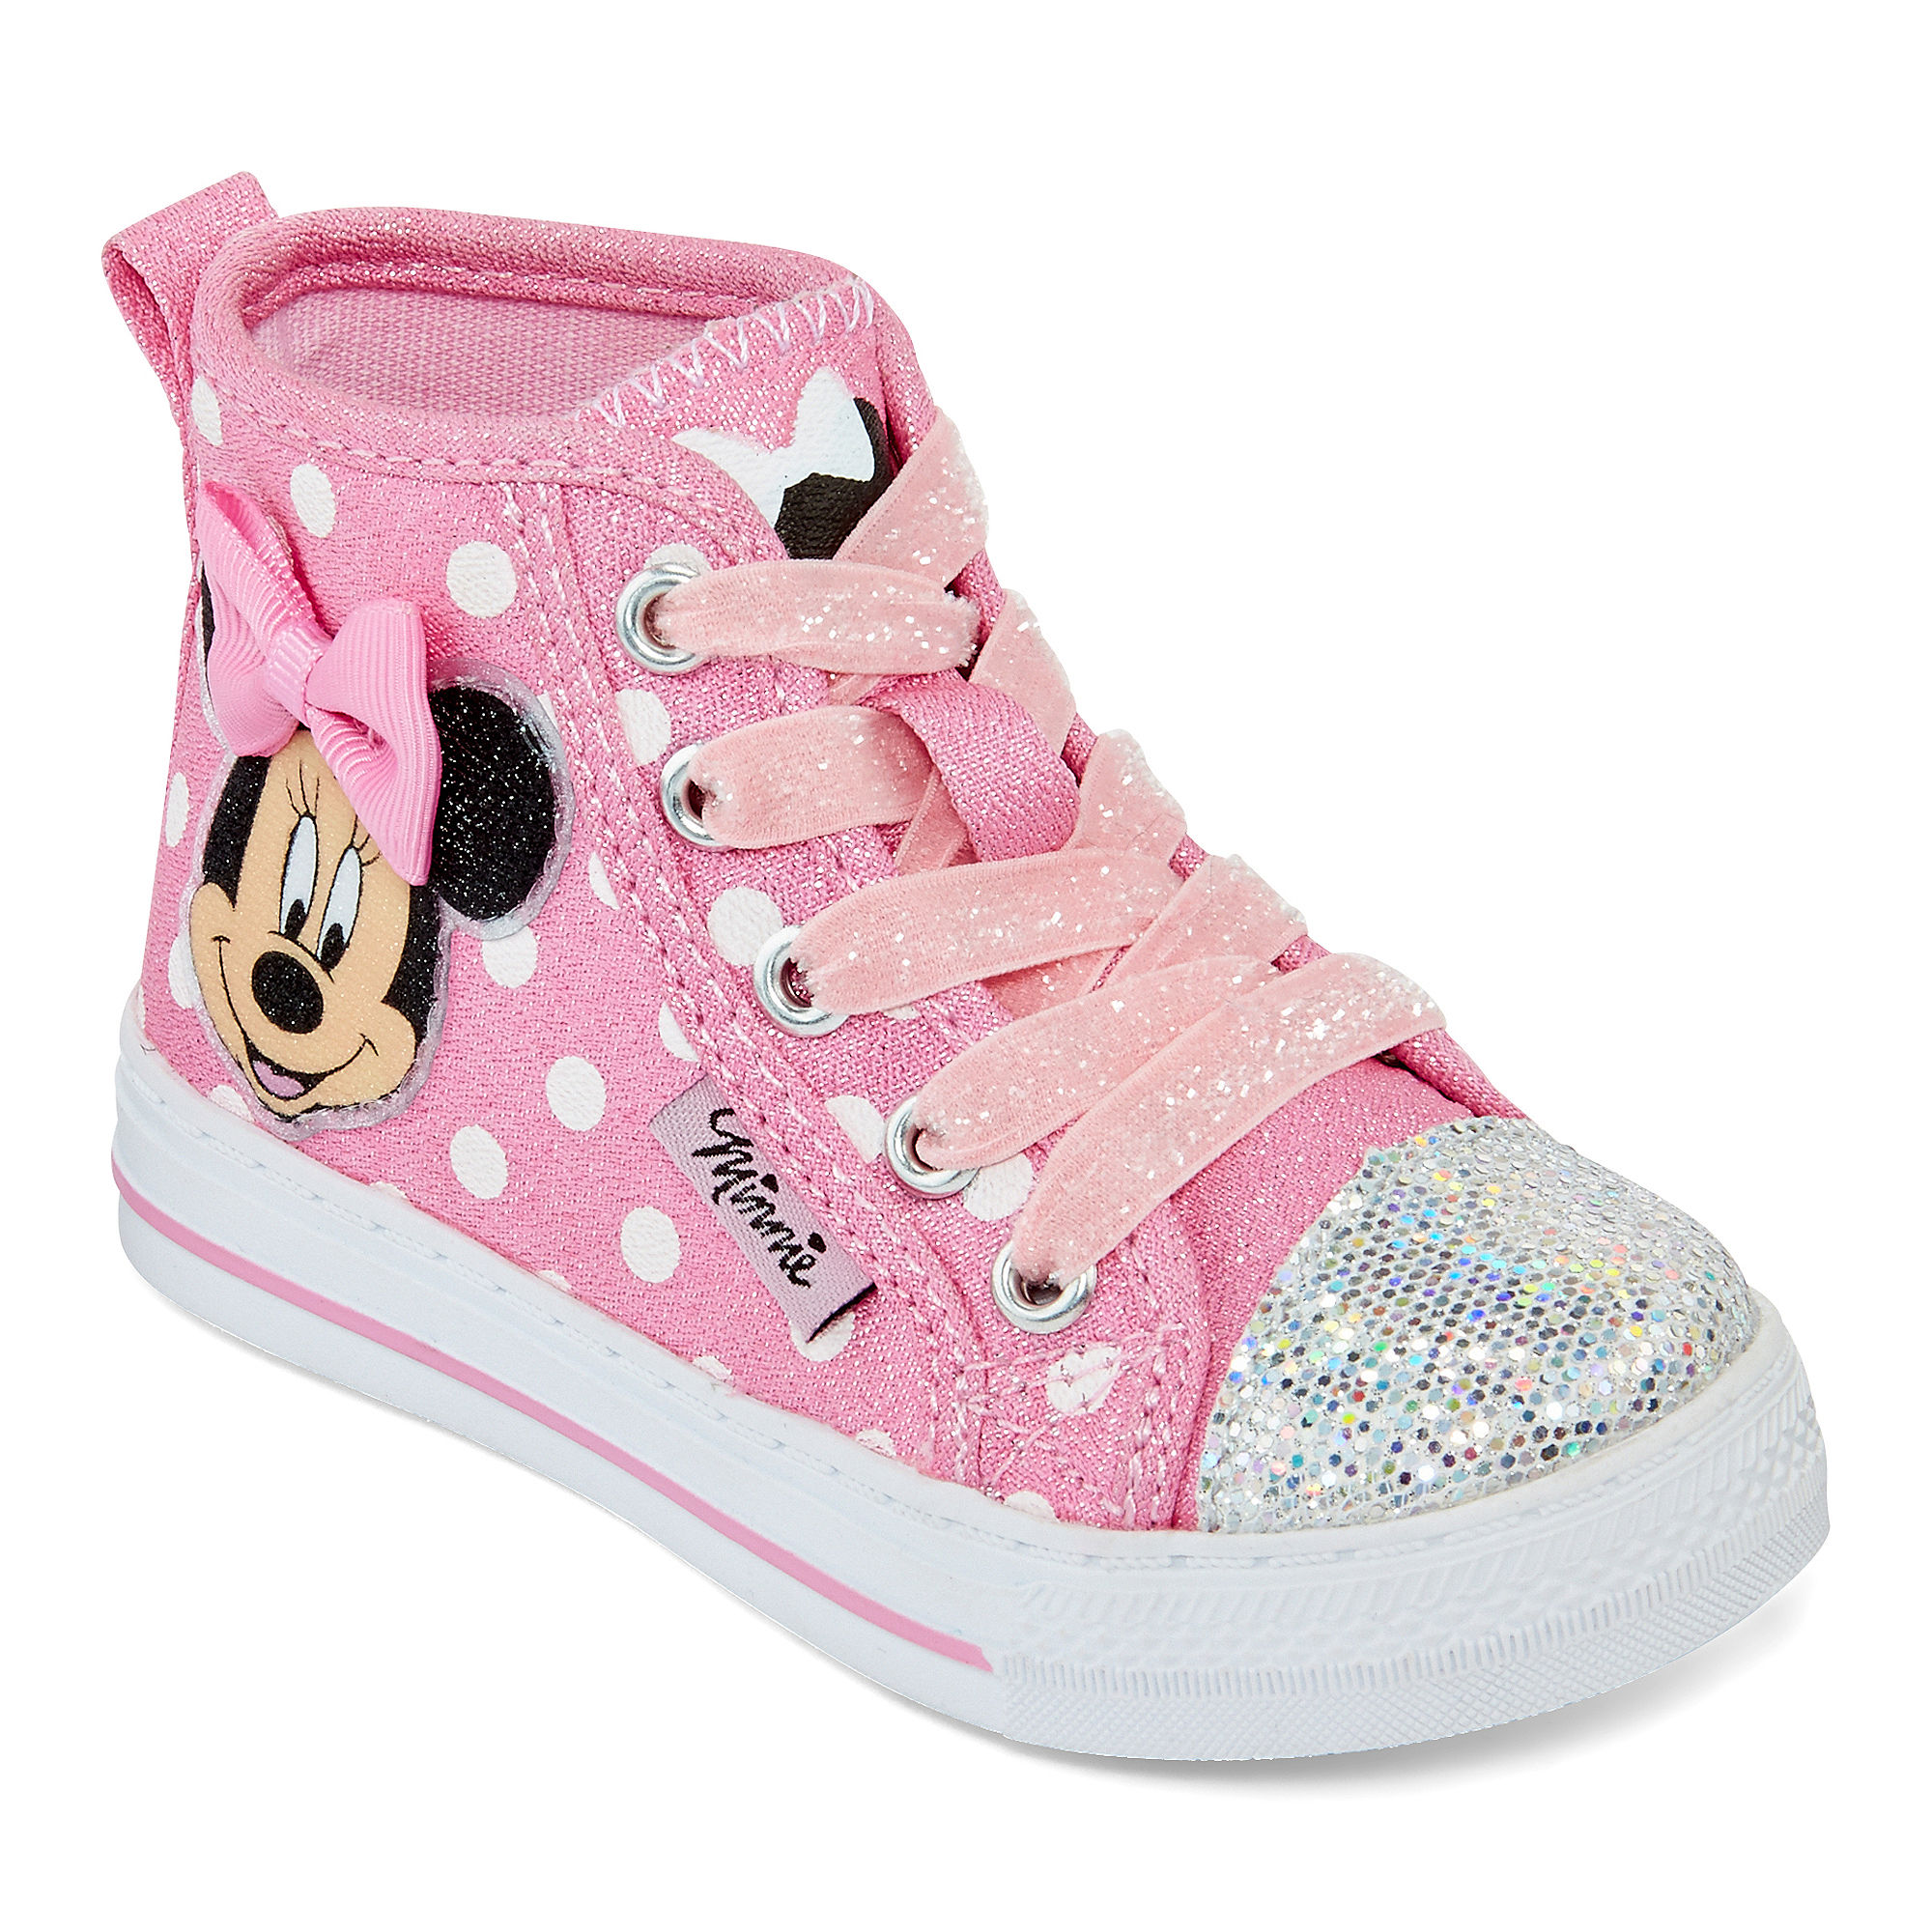 Top Sneakers Minnie Mouse Shoes For Toddler